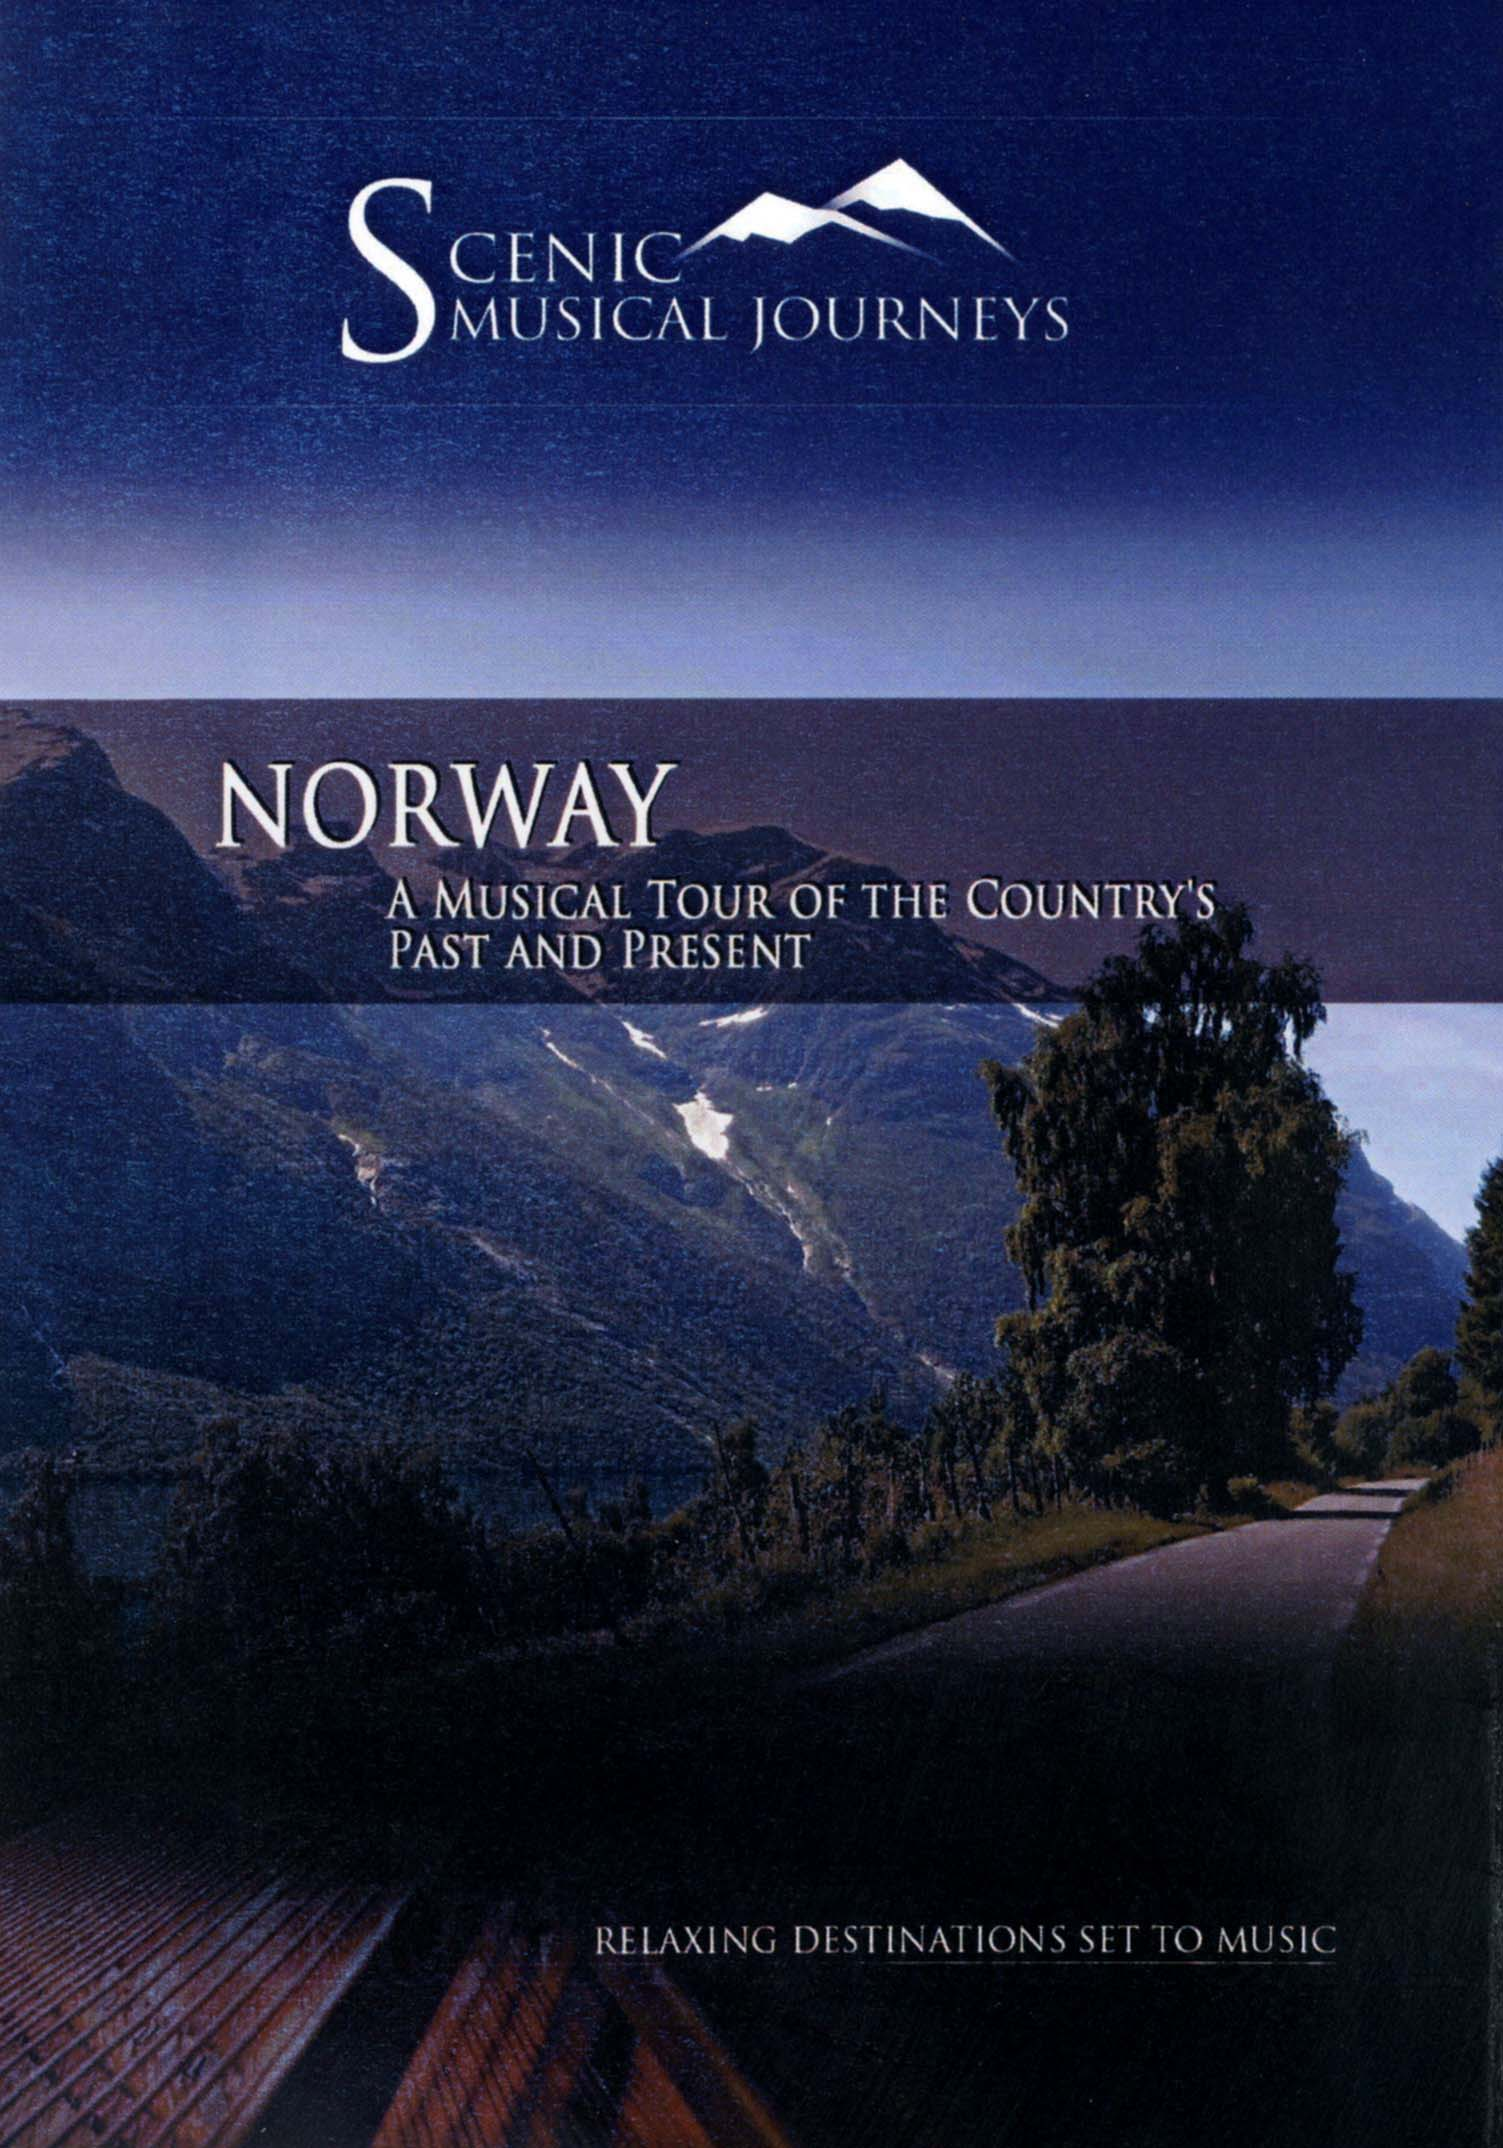 Scenic Musical Journeys: Norway - A Musical Tour of the Country's Past and Present